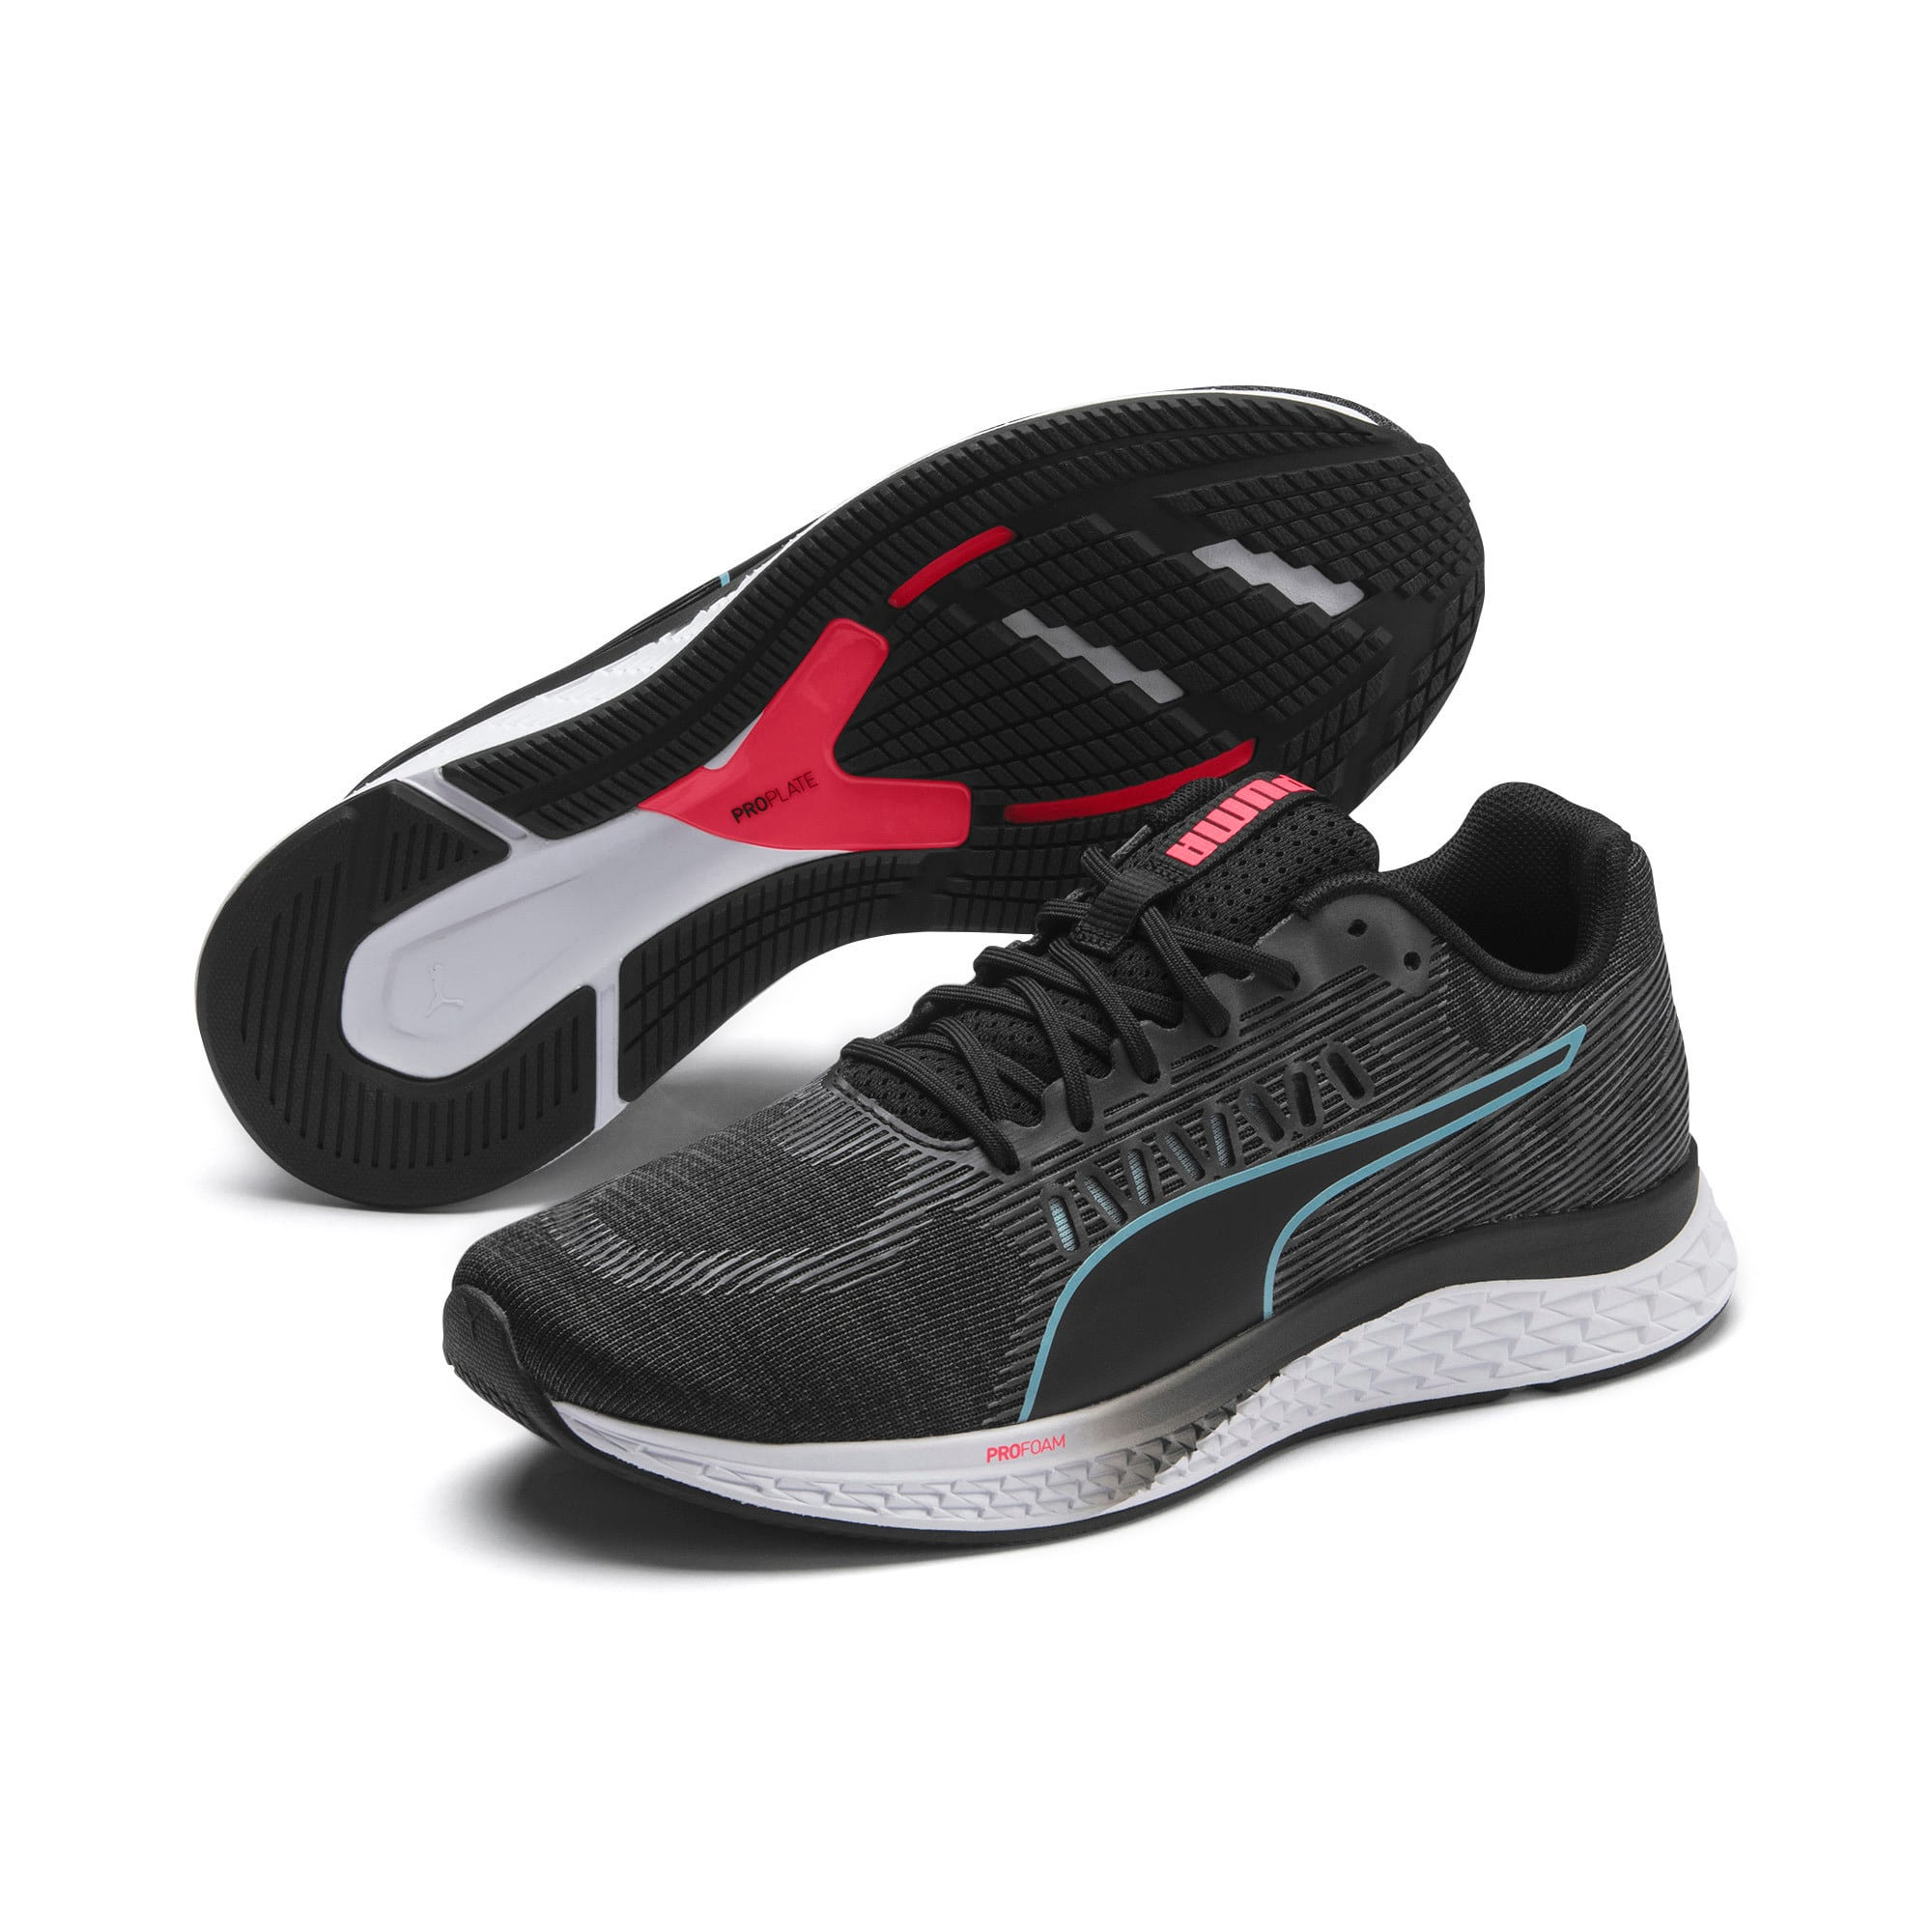 Thumbnail 3 of SPEED Sutamina Women's Running Shoes, Black-Milky Blue-Pink Alert, medium